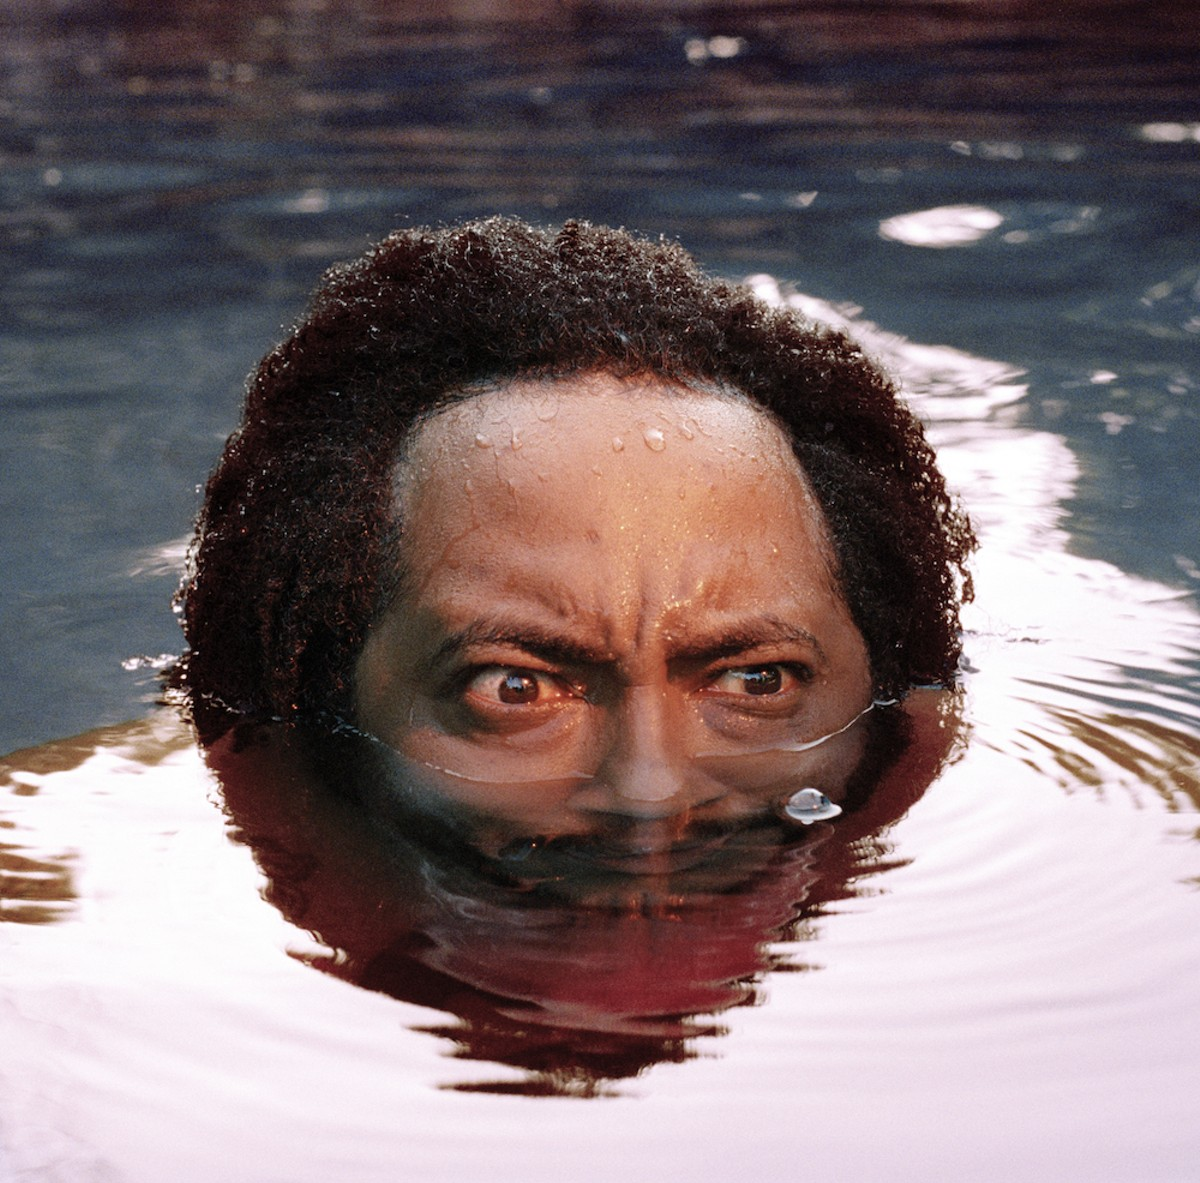 music_thundercat_press_shot_1_credit_eddie_alcazar.jpg